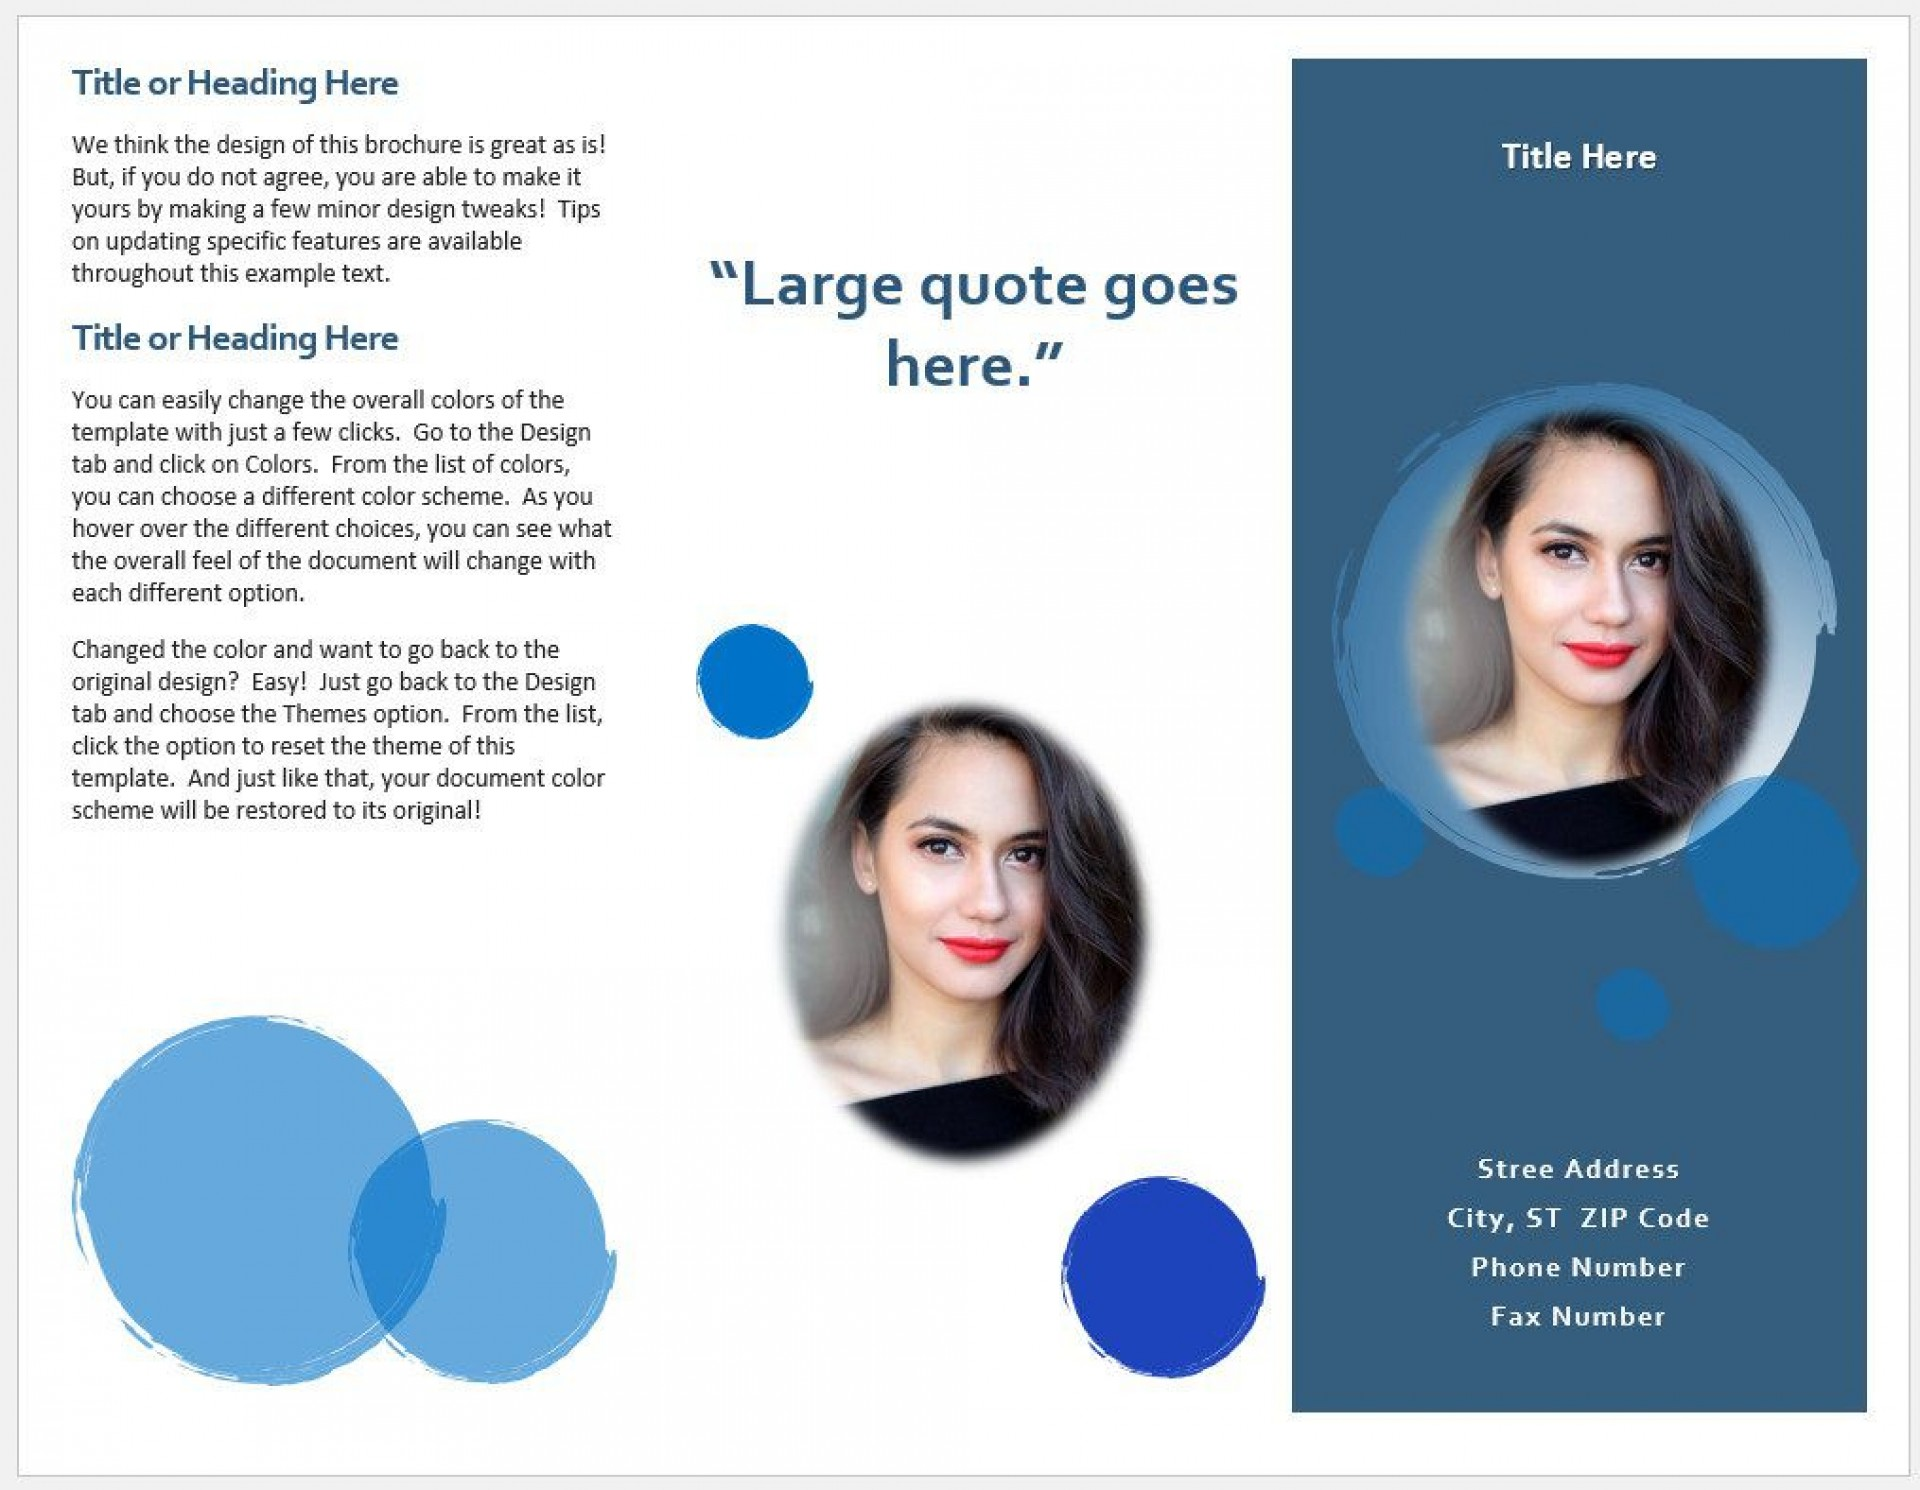 008 Awesome Brochure Template Microsoft Word Free Tri Fold Inspiration  Blank For 2010 Download1920